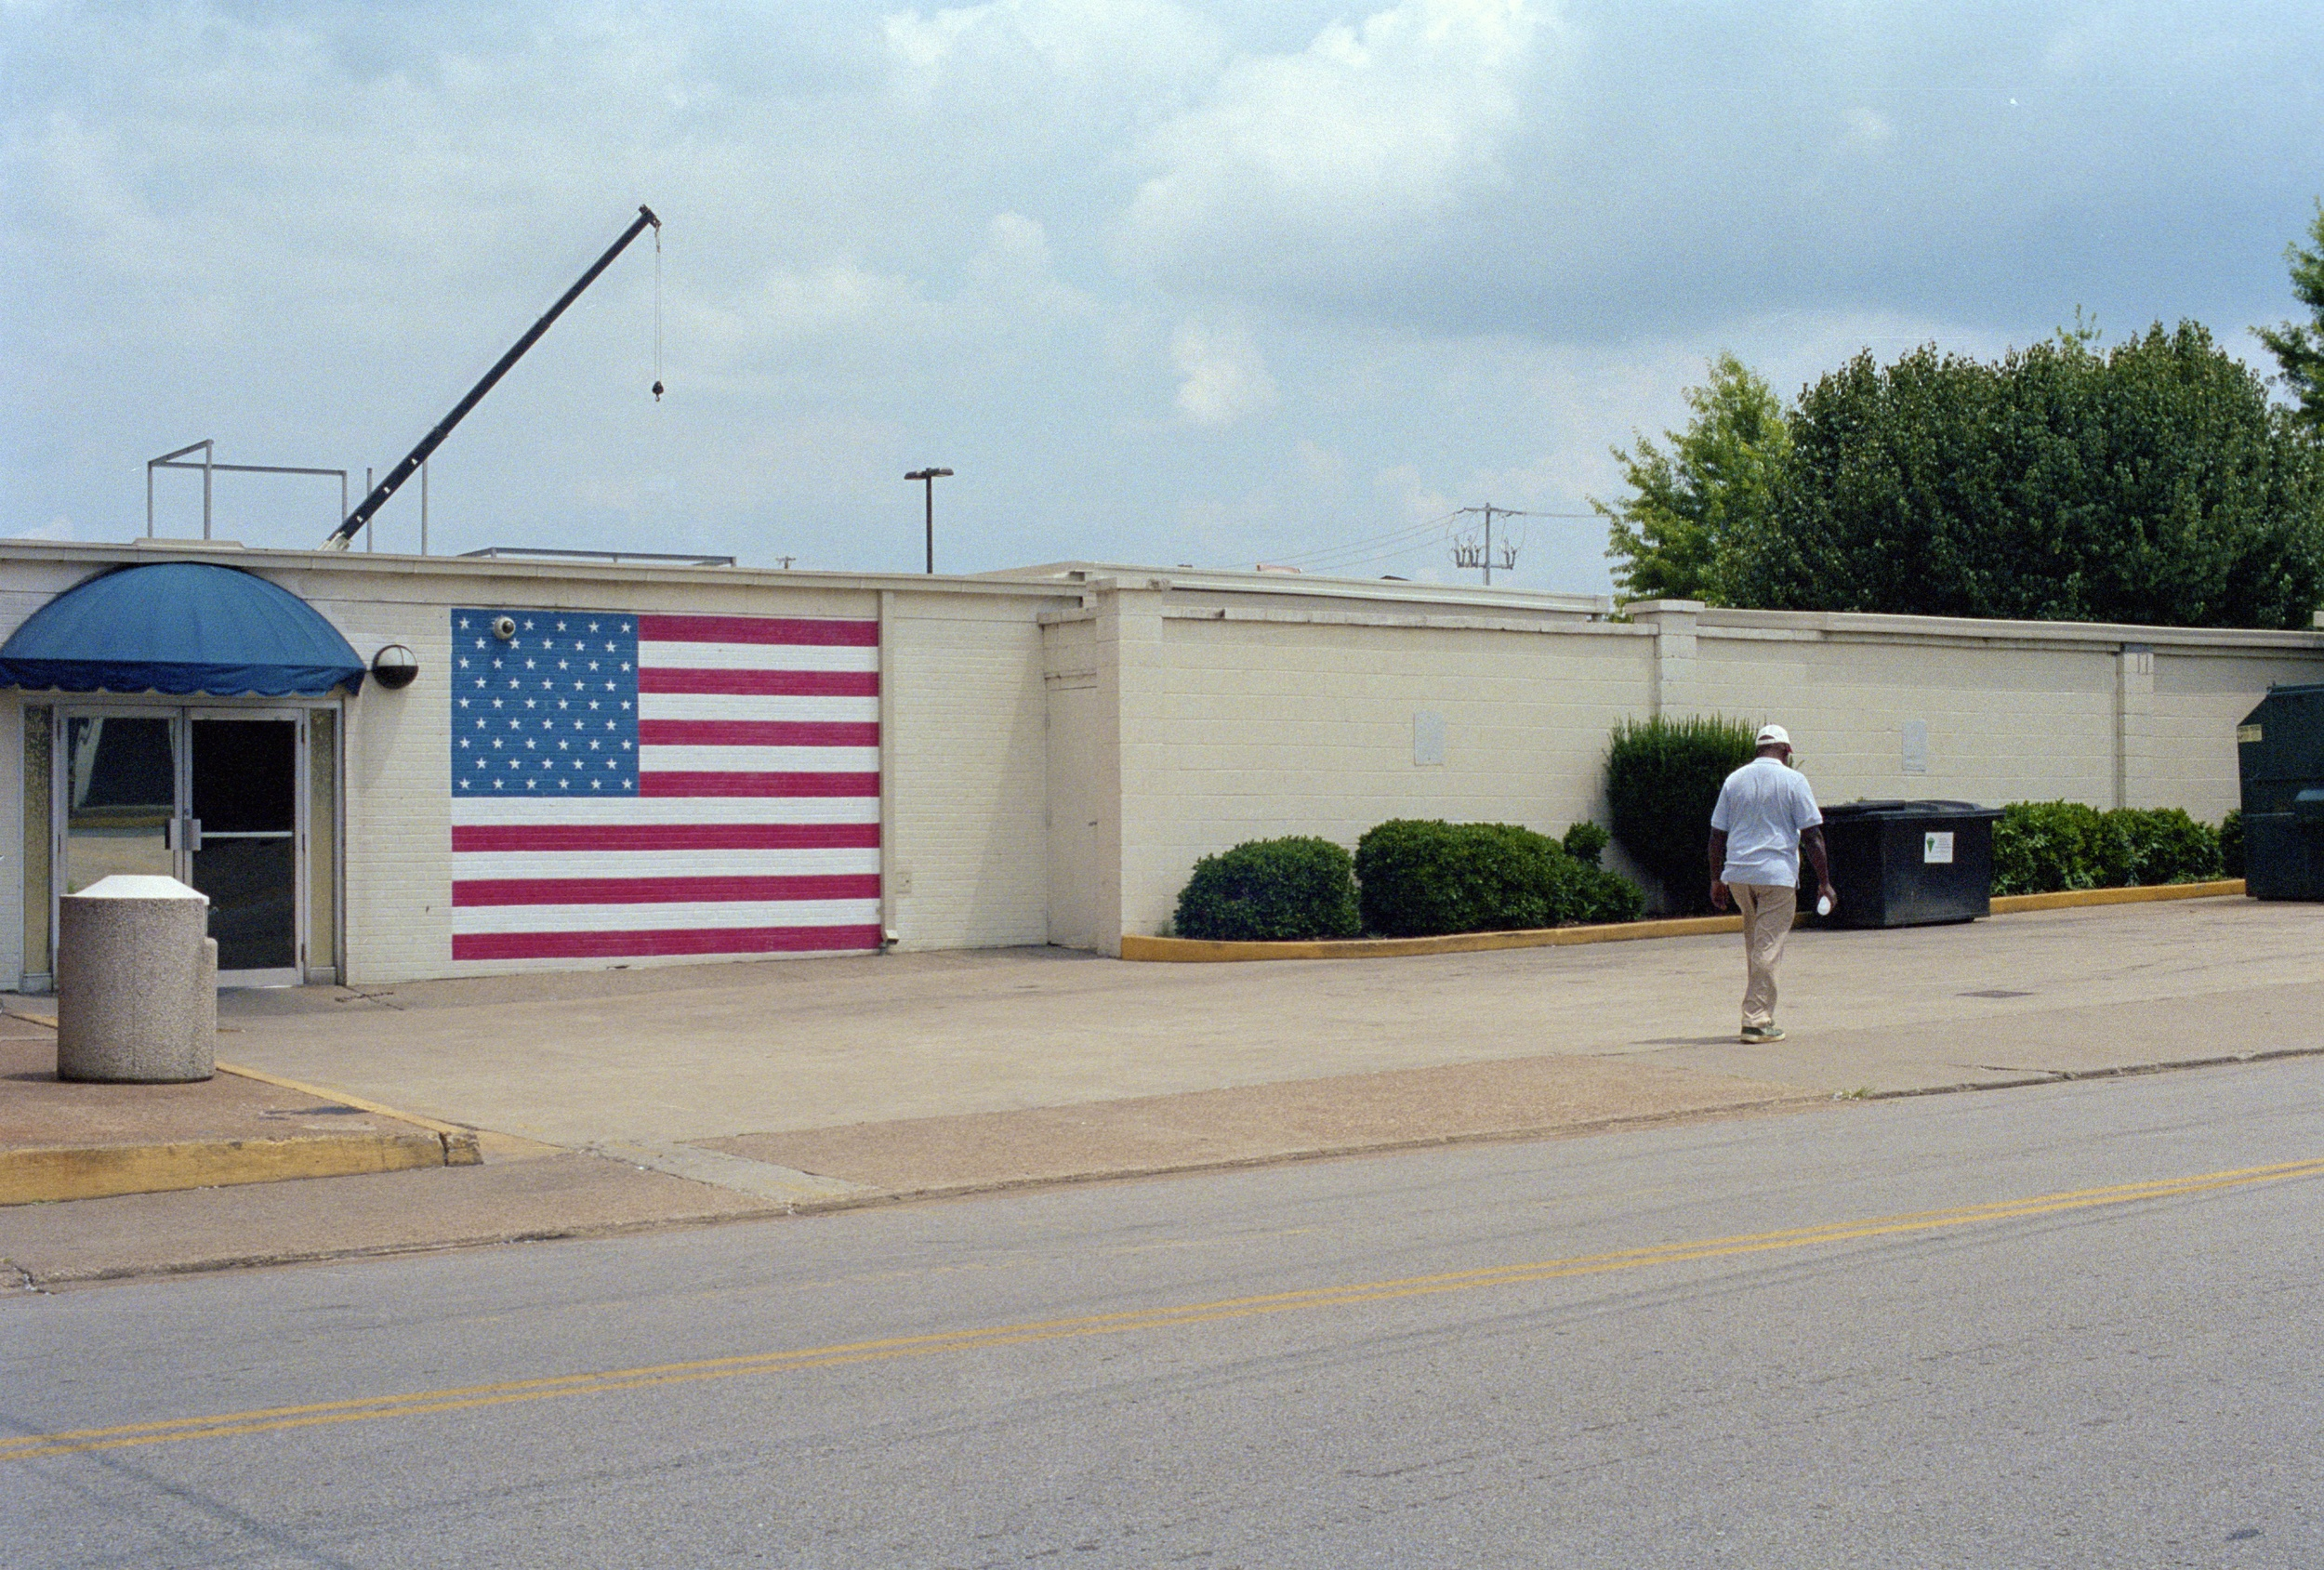 American Dream, Nashville, TN. 2015. C-Print.